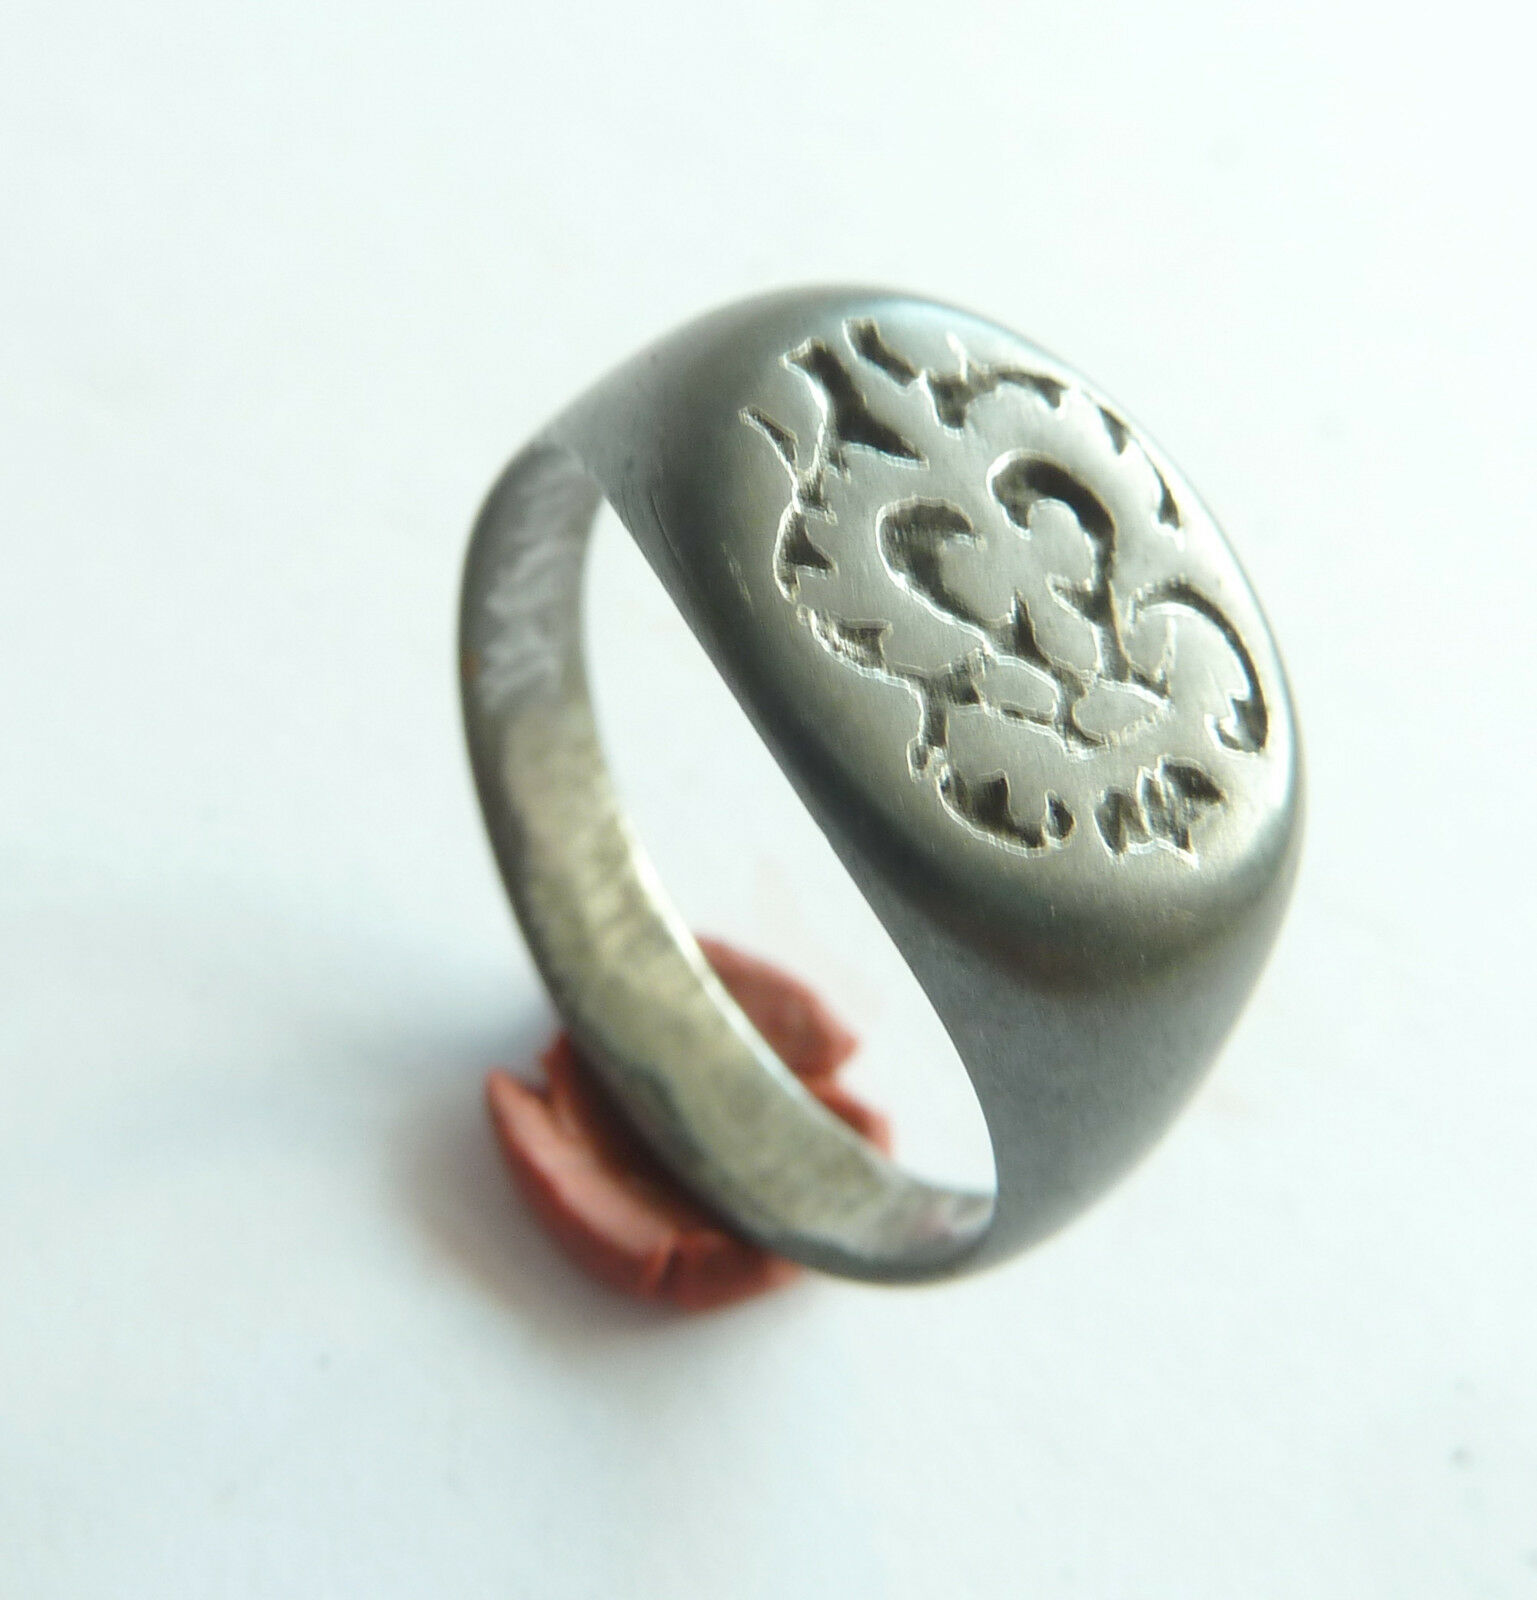 Post-medieval bronze seal-ring (395).